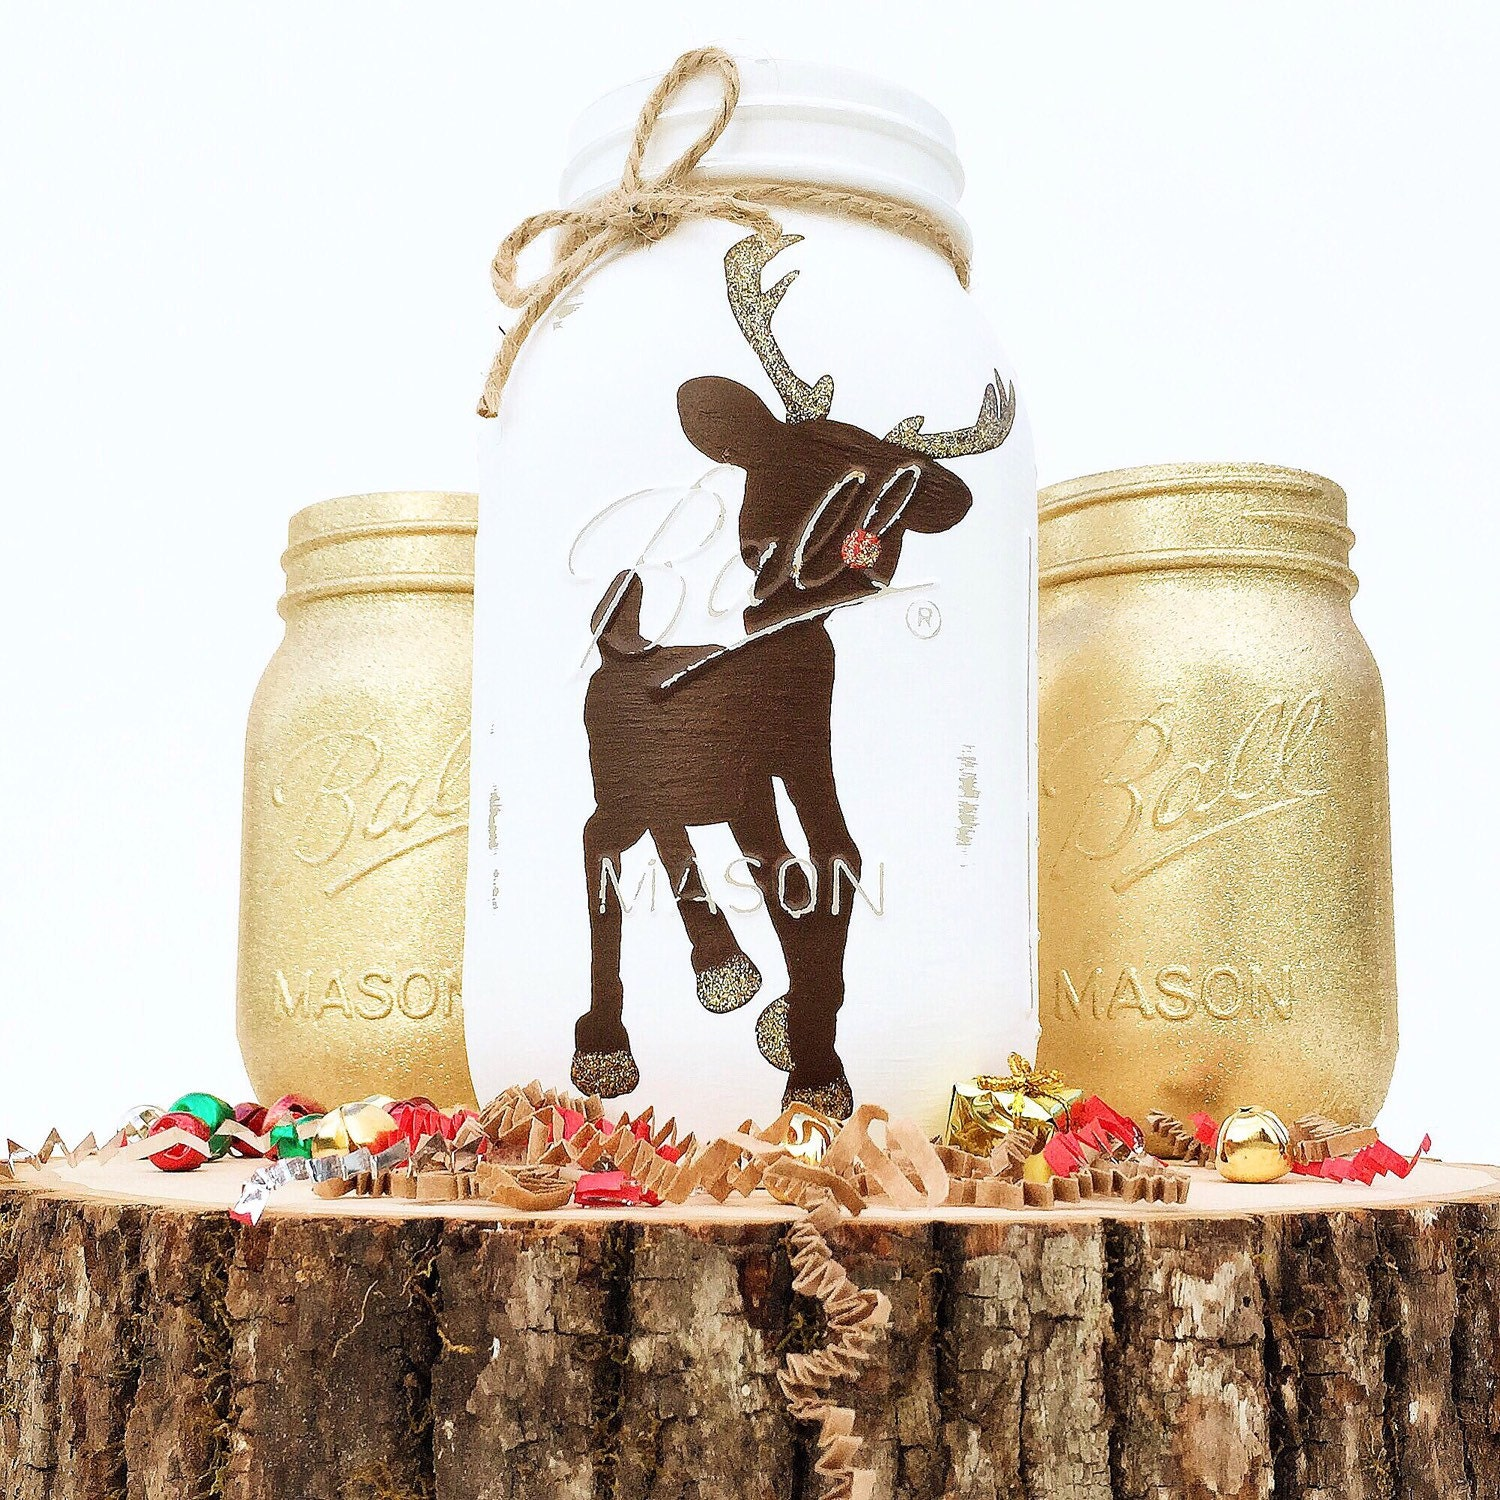 Mason Jar Christmas Decorations: Rudolph Mason Jar Trio Christmas Decor Reindeer Home Decor